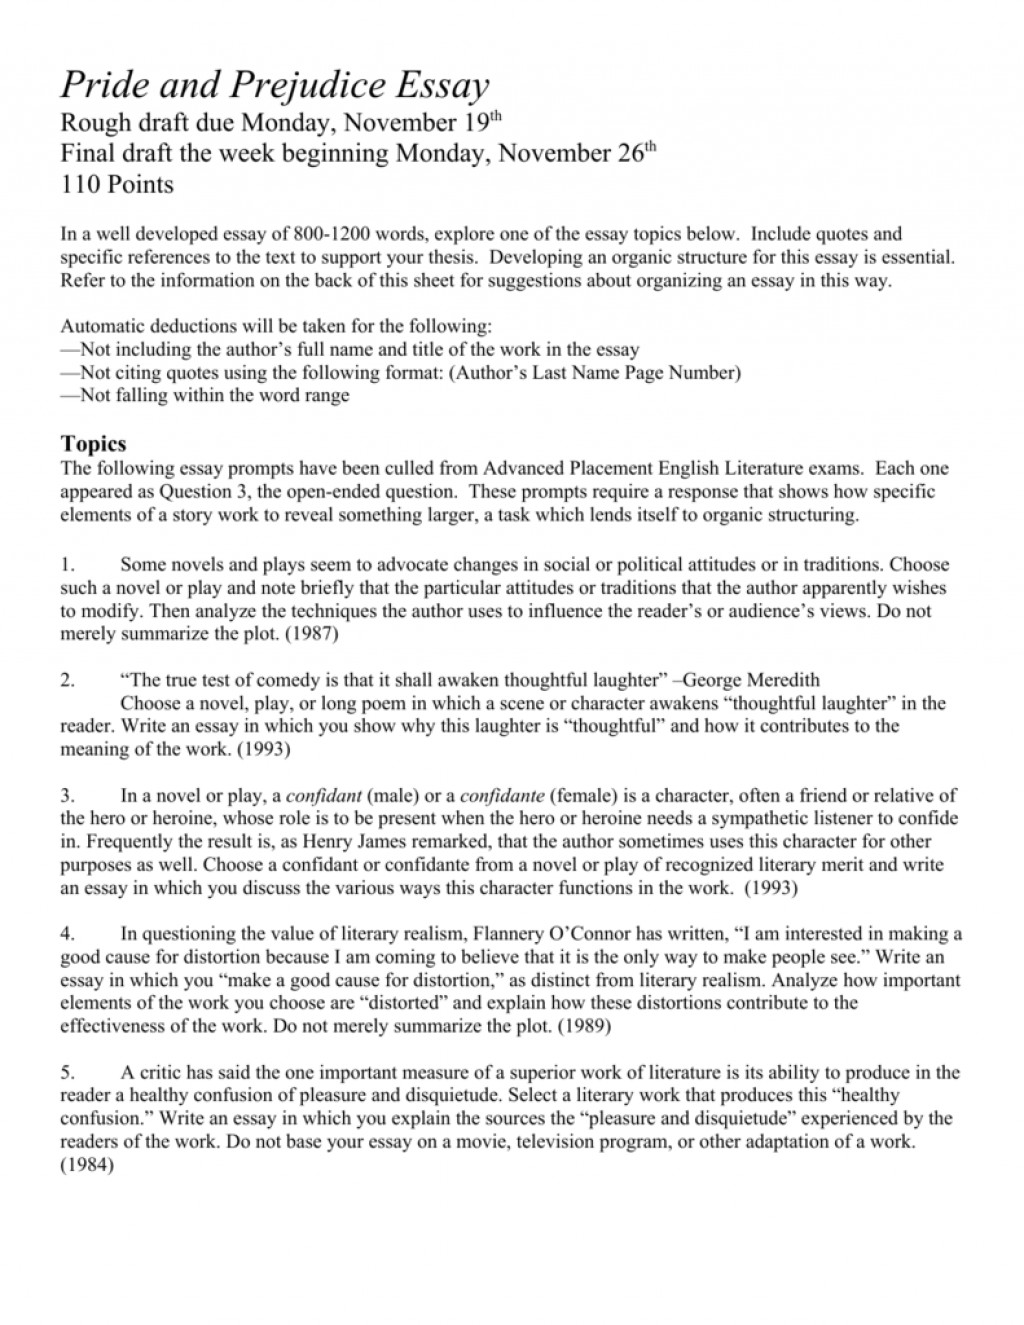 002 008797584 1 Essay Example Stunning Pride Goes Before A Fall Narrative Thesis Large